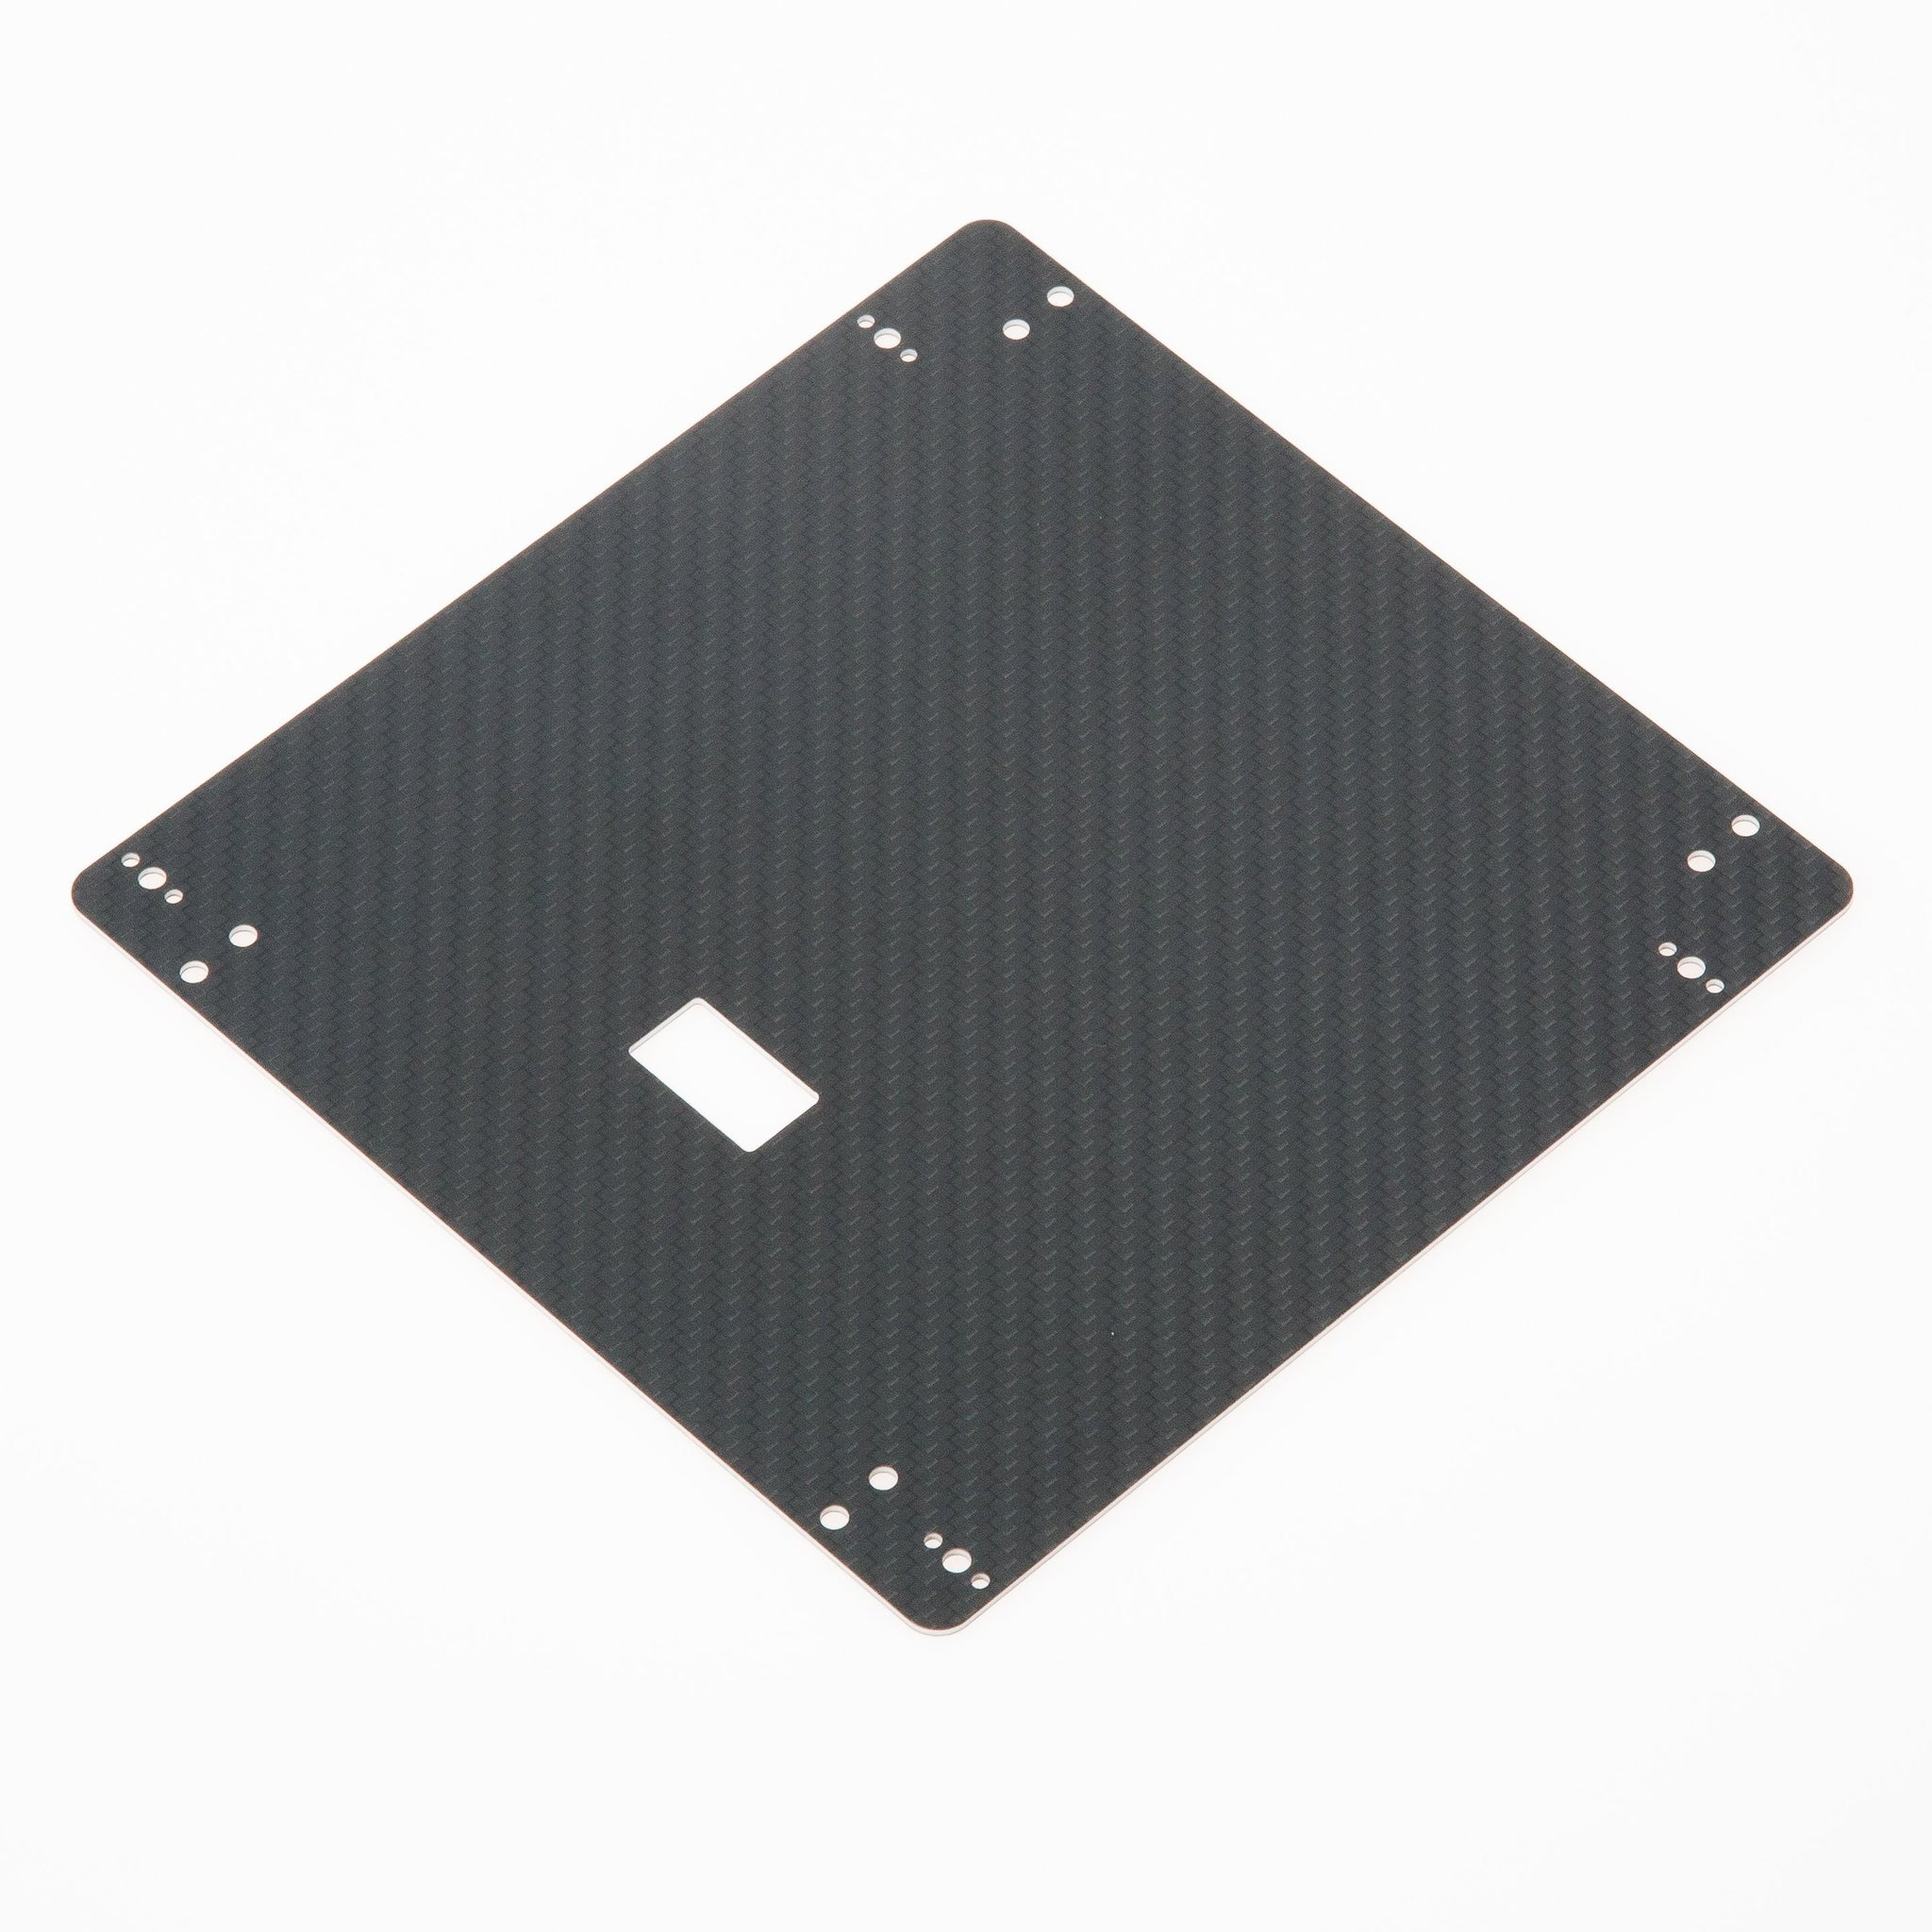 Matrice 600 Bottom Expansion Board V2 (M600, M600Pro)